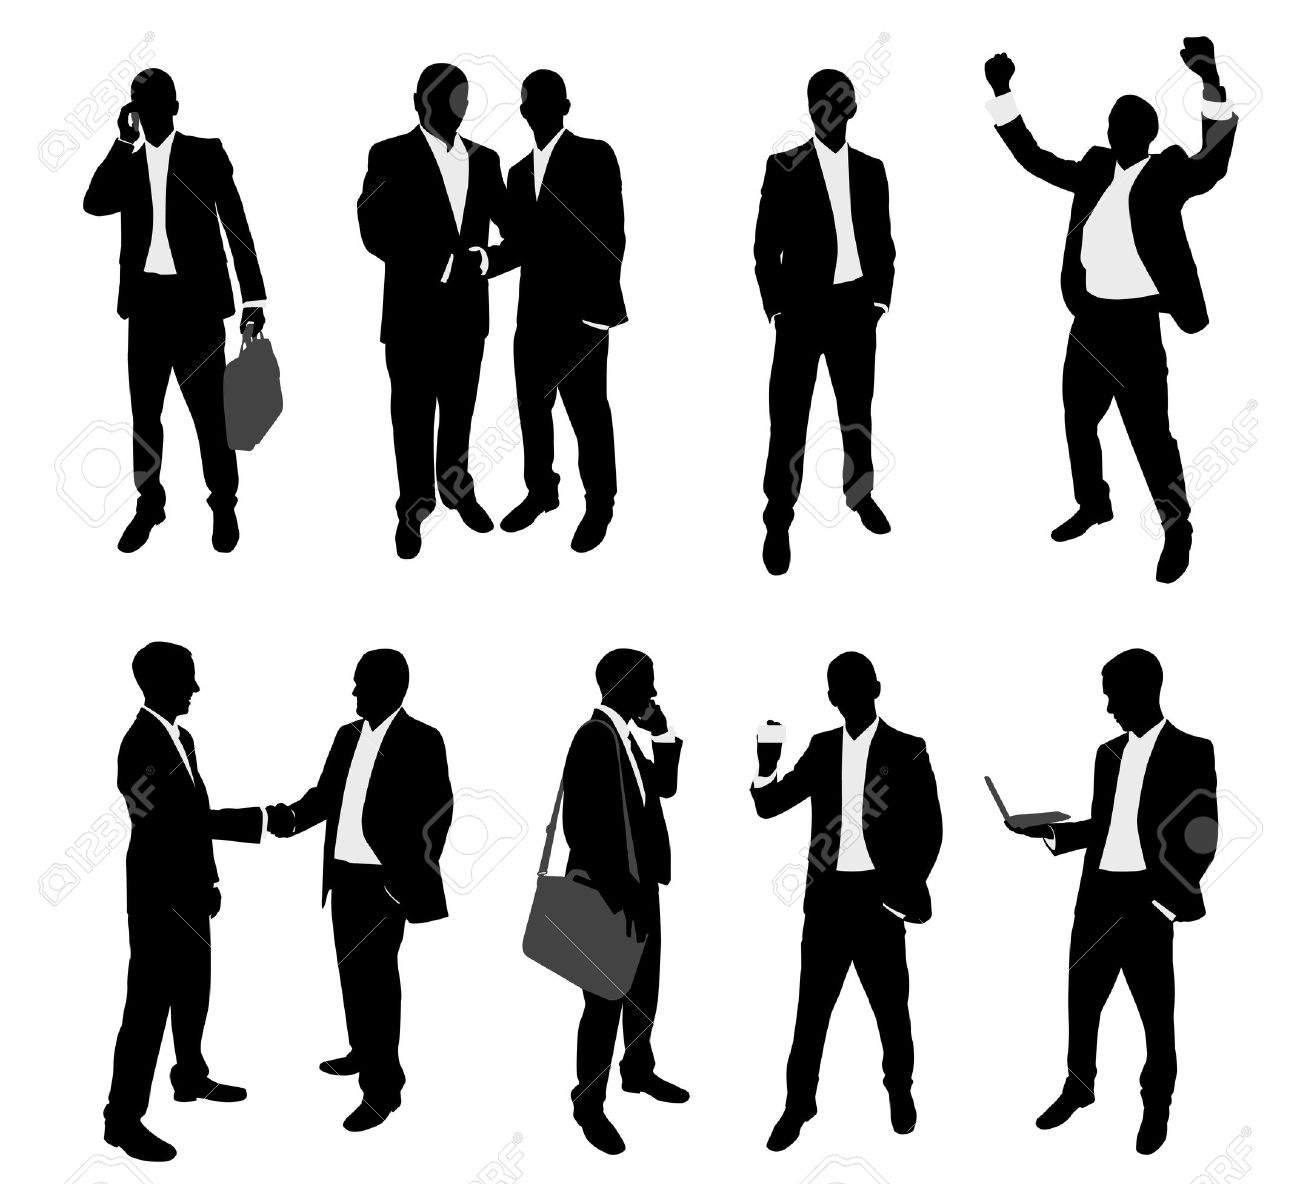 business people silhouettes collection - 17626174